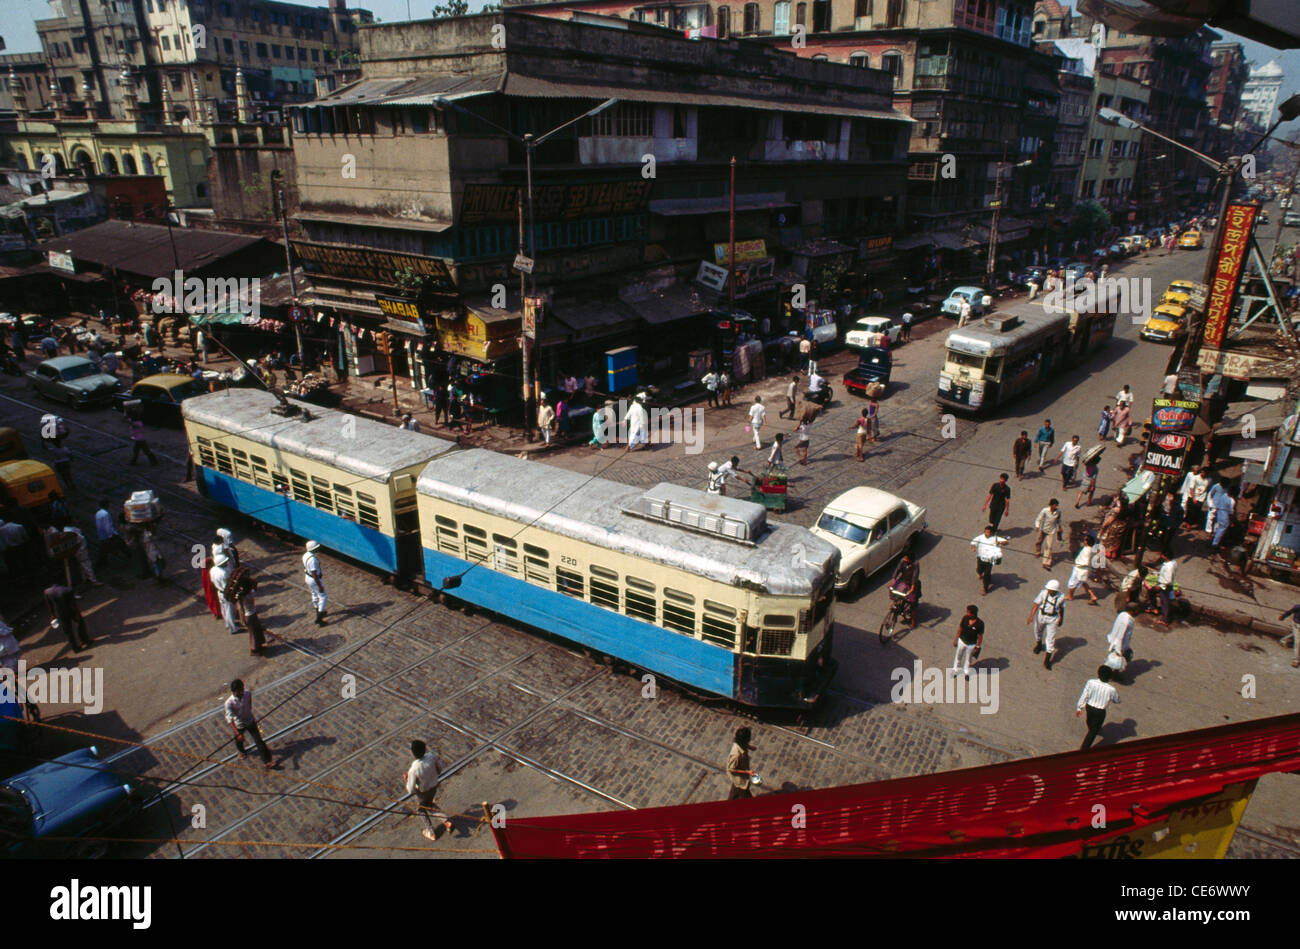 RAA 85370 : aerial view electric trams running on streets of calcutta kolkata west bengal india - Stock Image